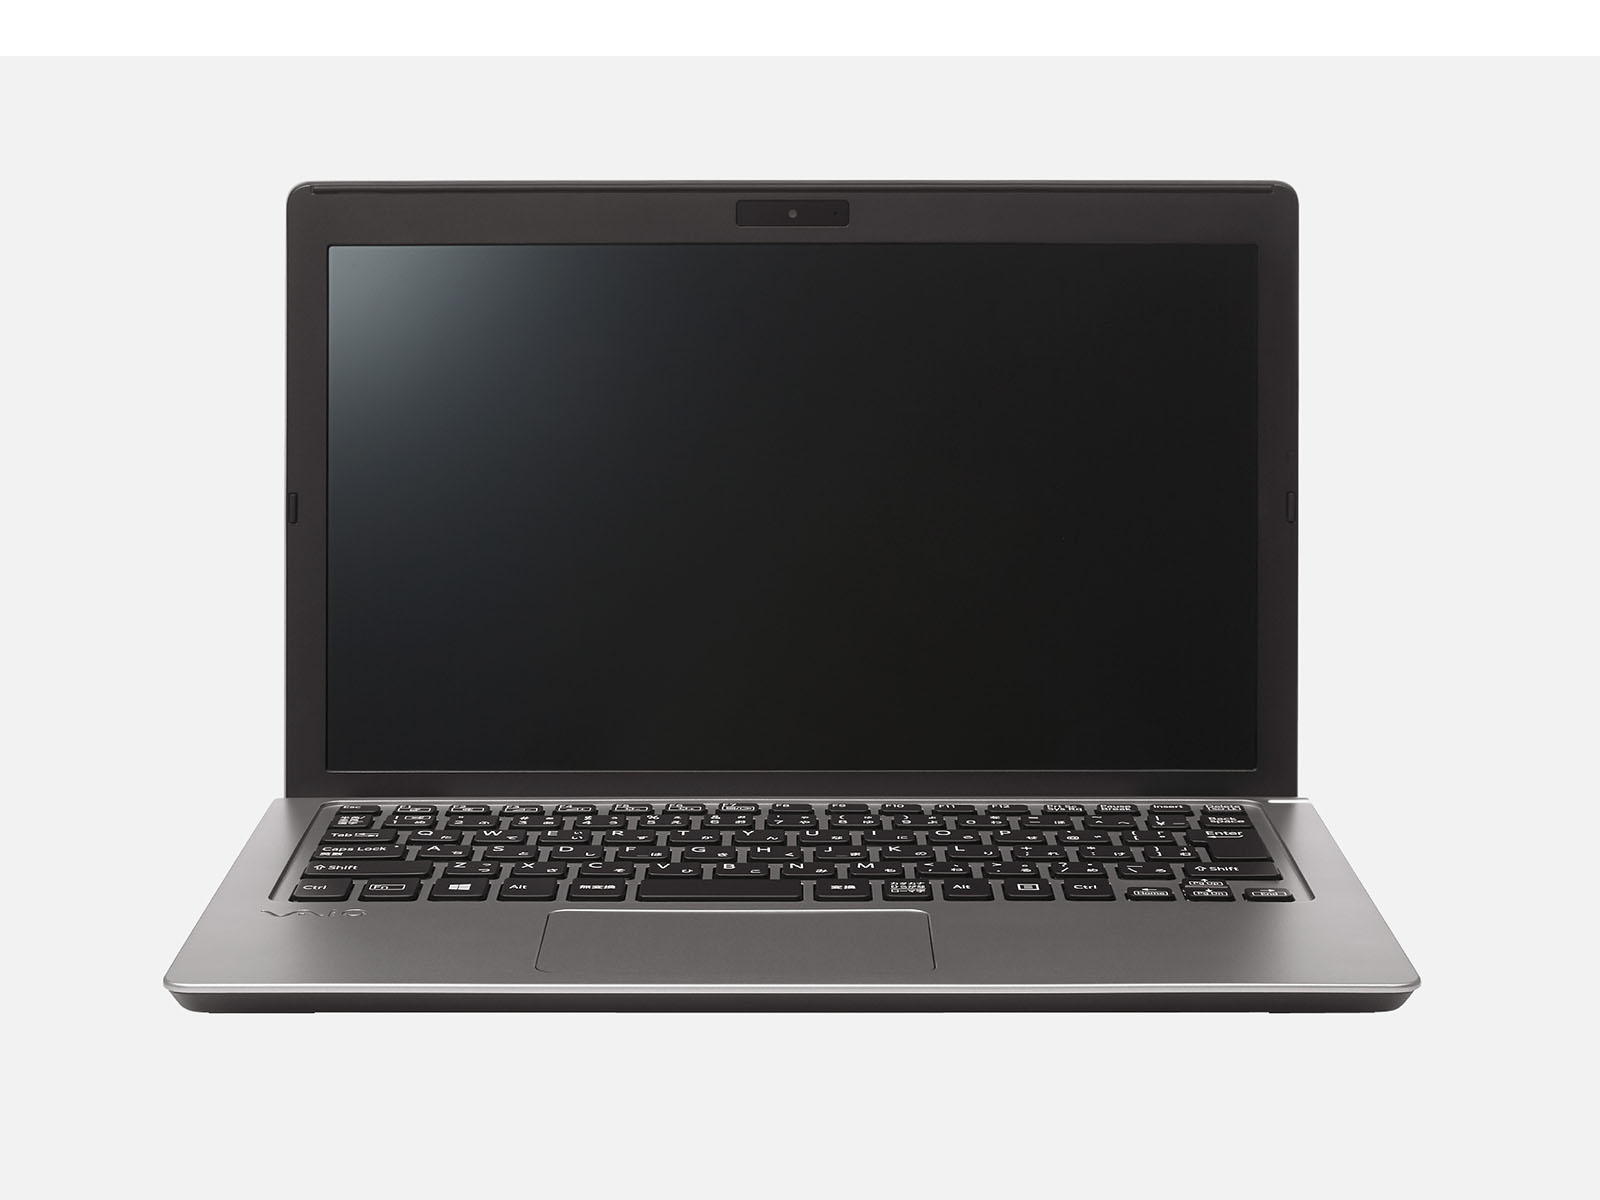 light-stylish-laptop-vaio-s11